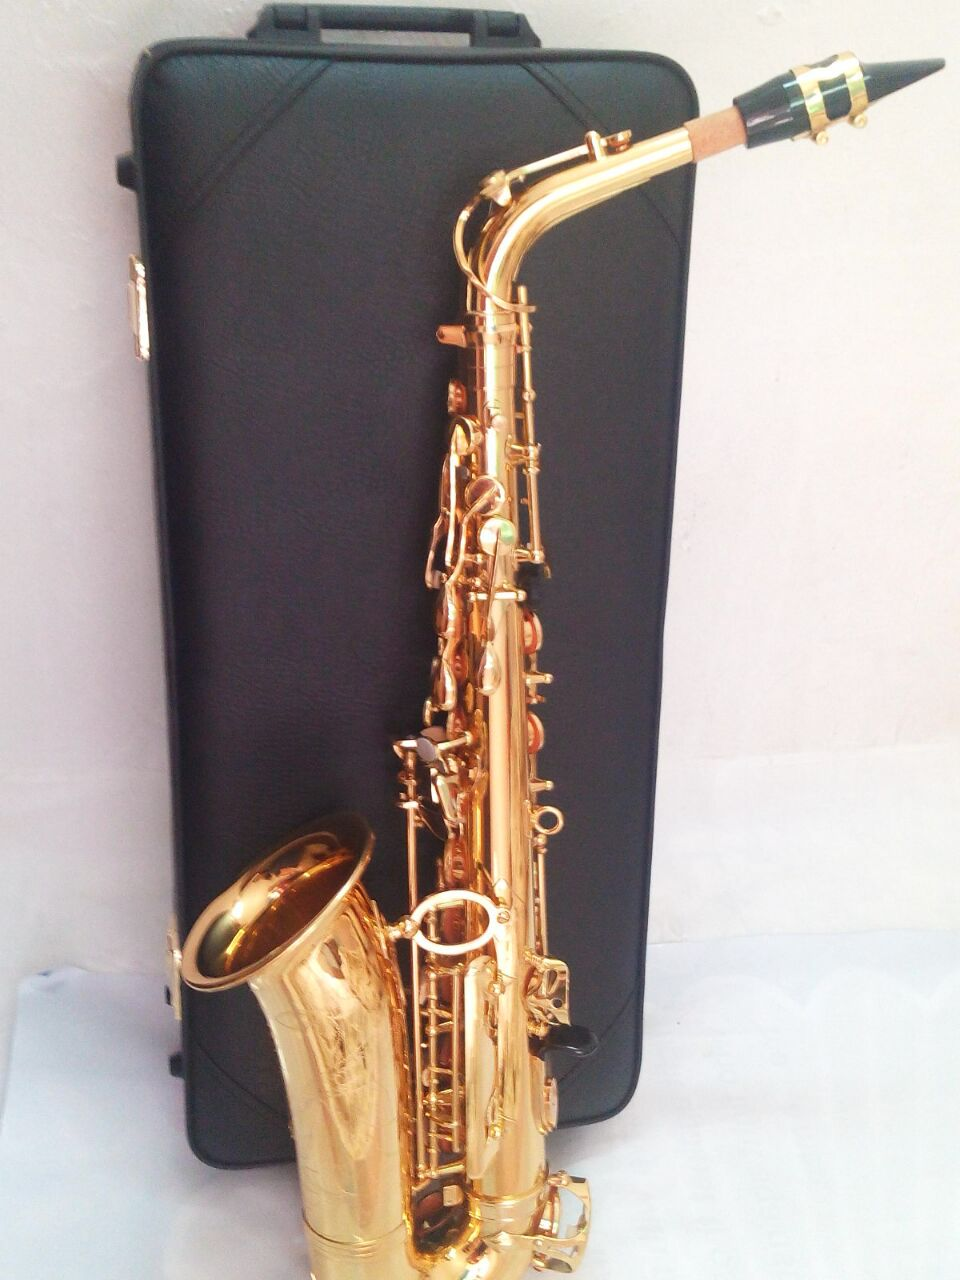 New Saxophone Alto Sax YAS 62 Copy Professional E-flat Gold Saxofone Top Musical Instruments mayer boch